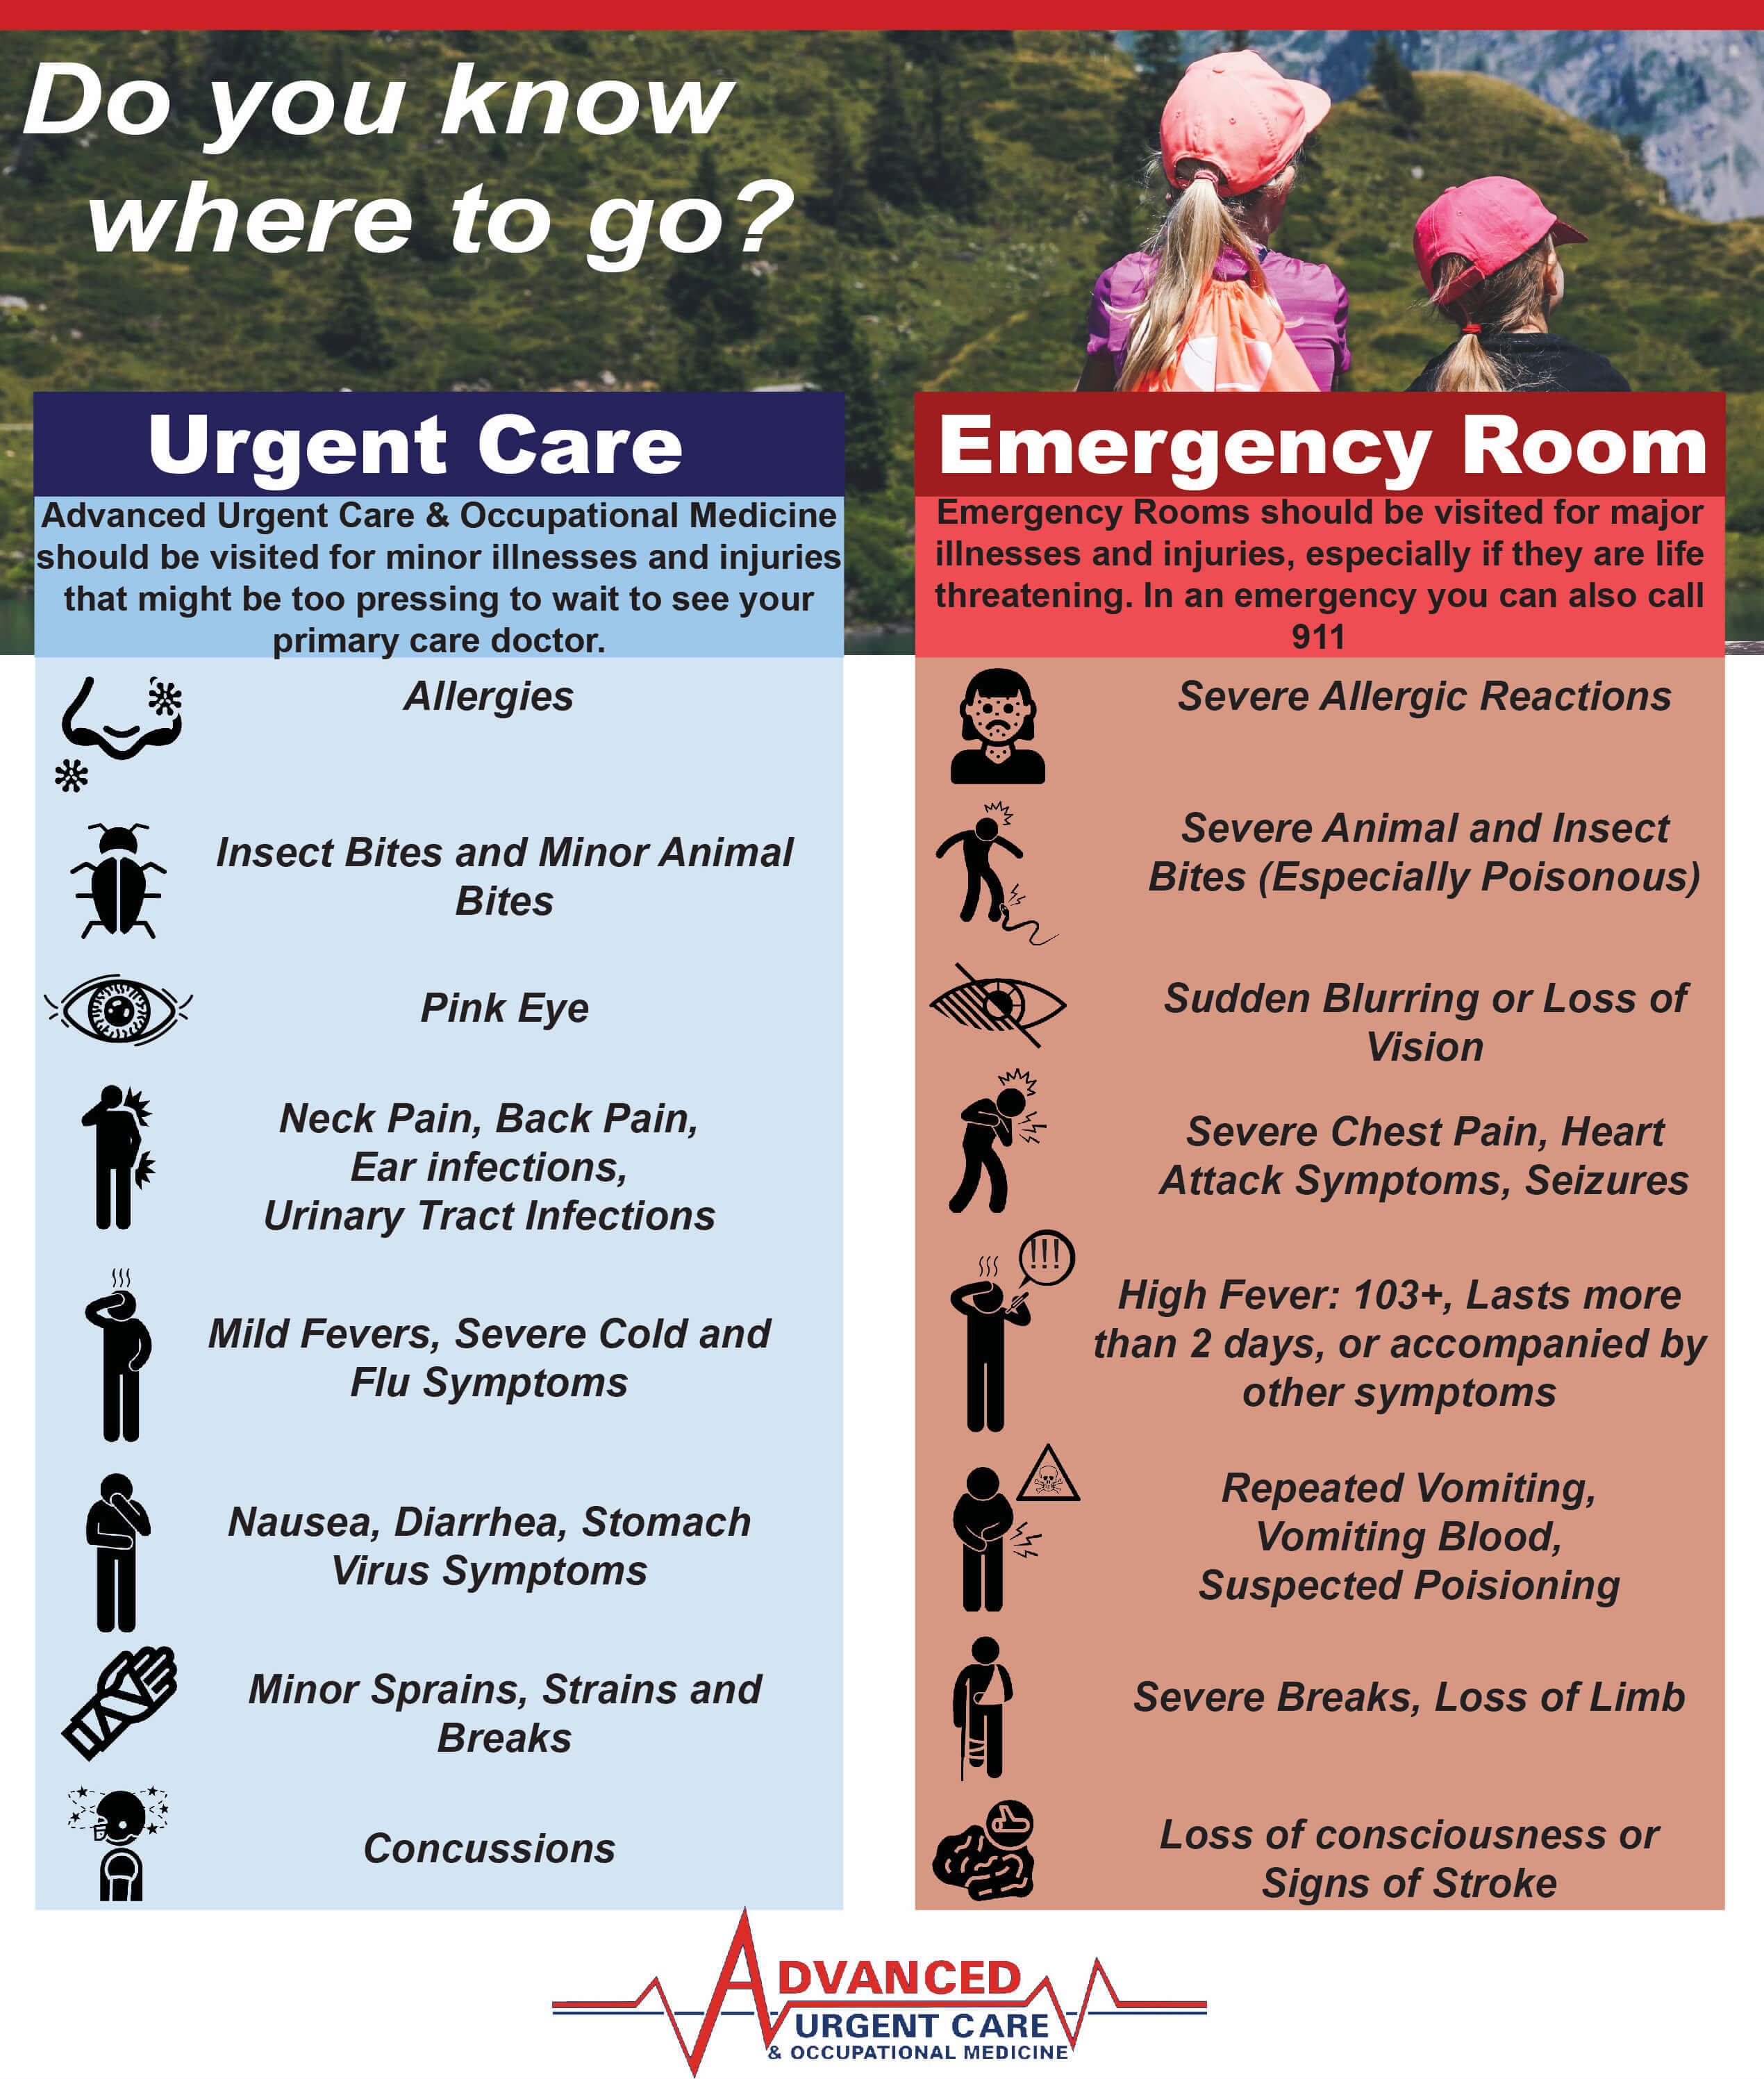 This is a list highlighting the differences between urgent care and ER